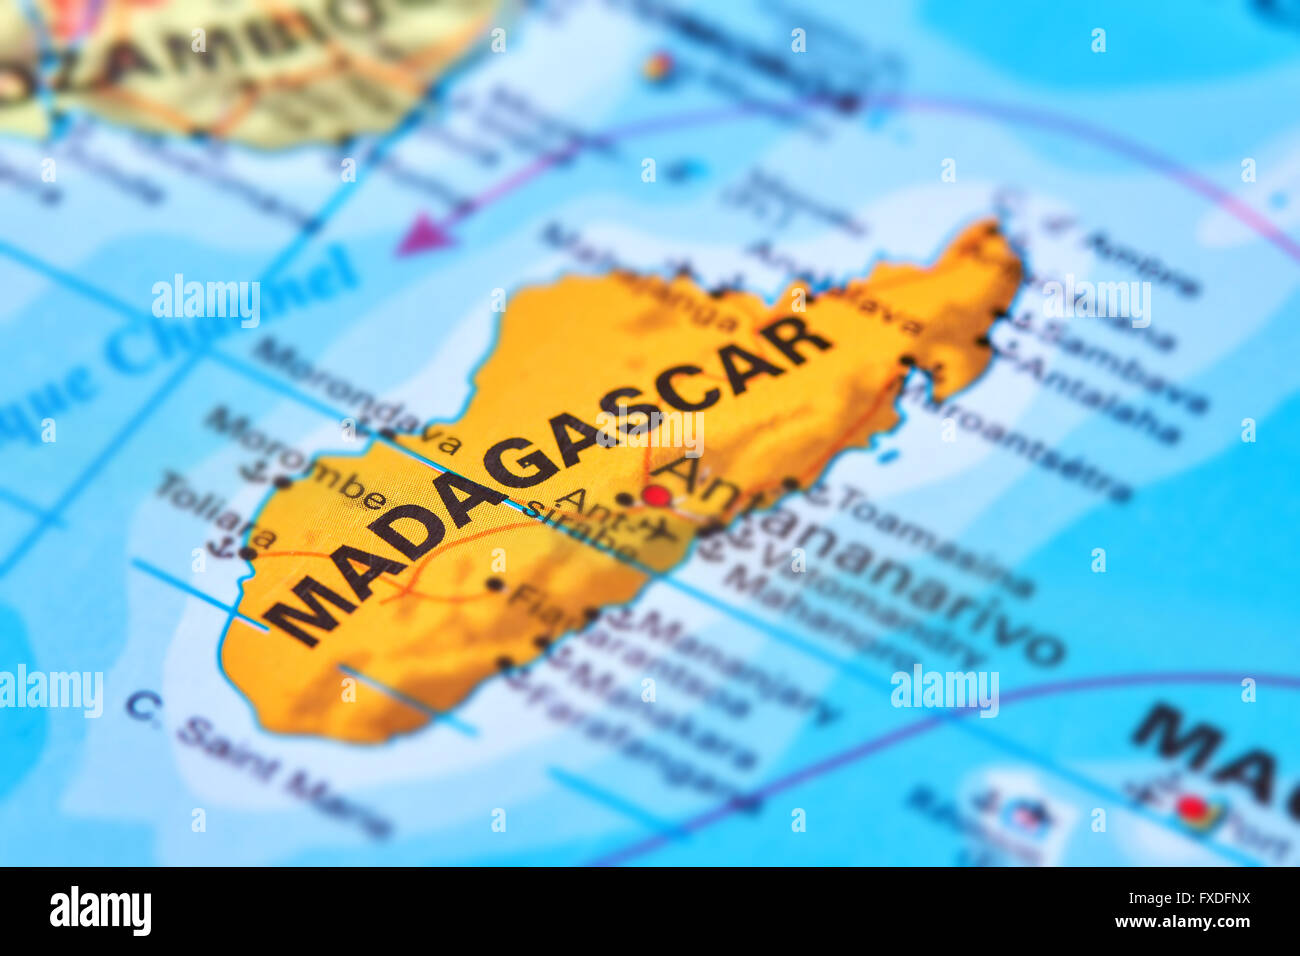 Madagascar island country on the world map stock photo 102330646 madagascar island country on the world map gumiabroncs Gallery